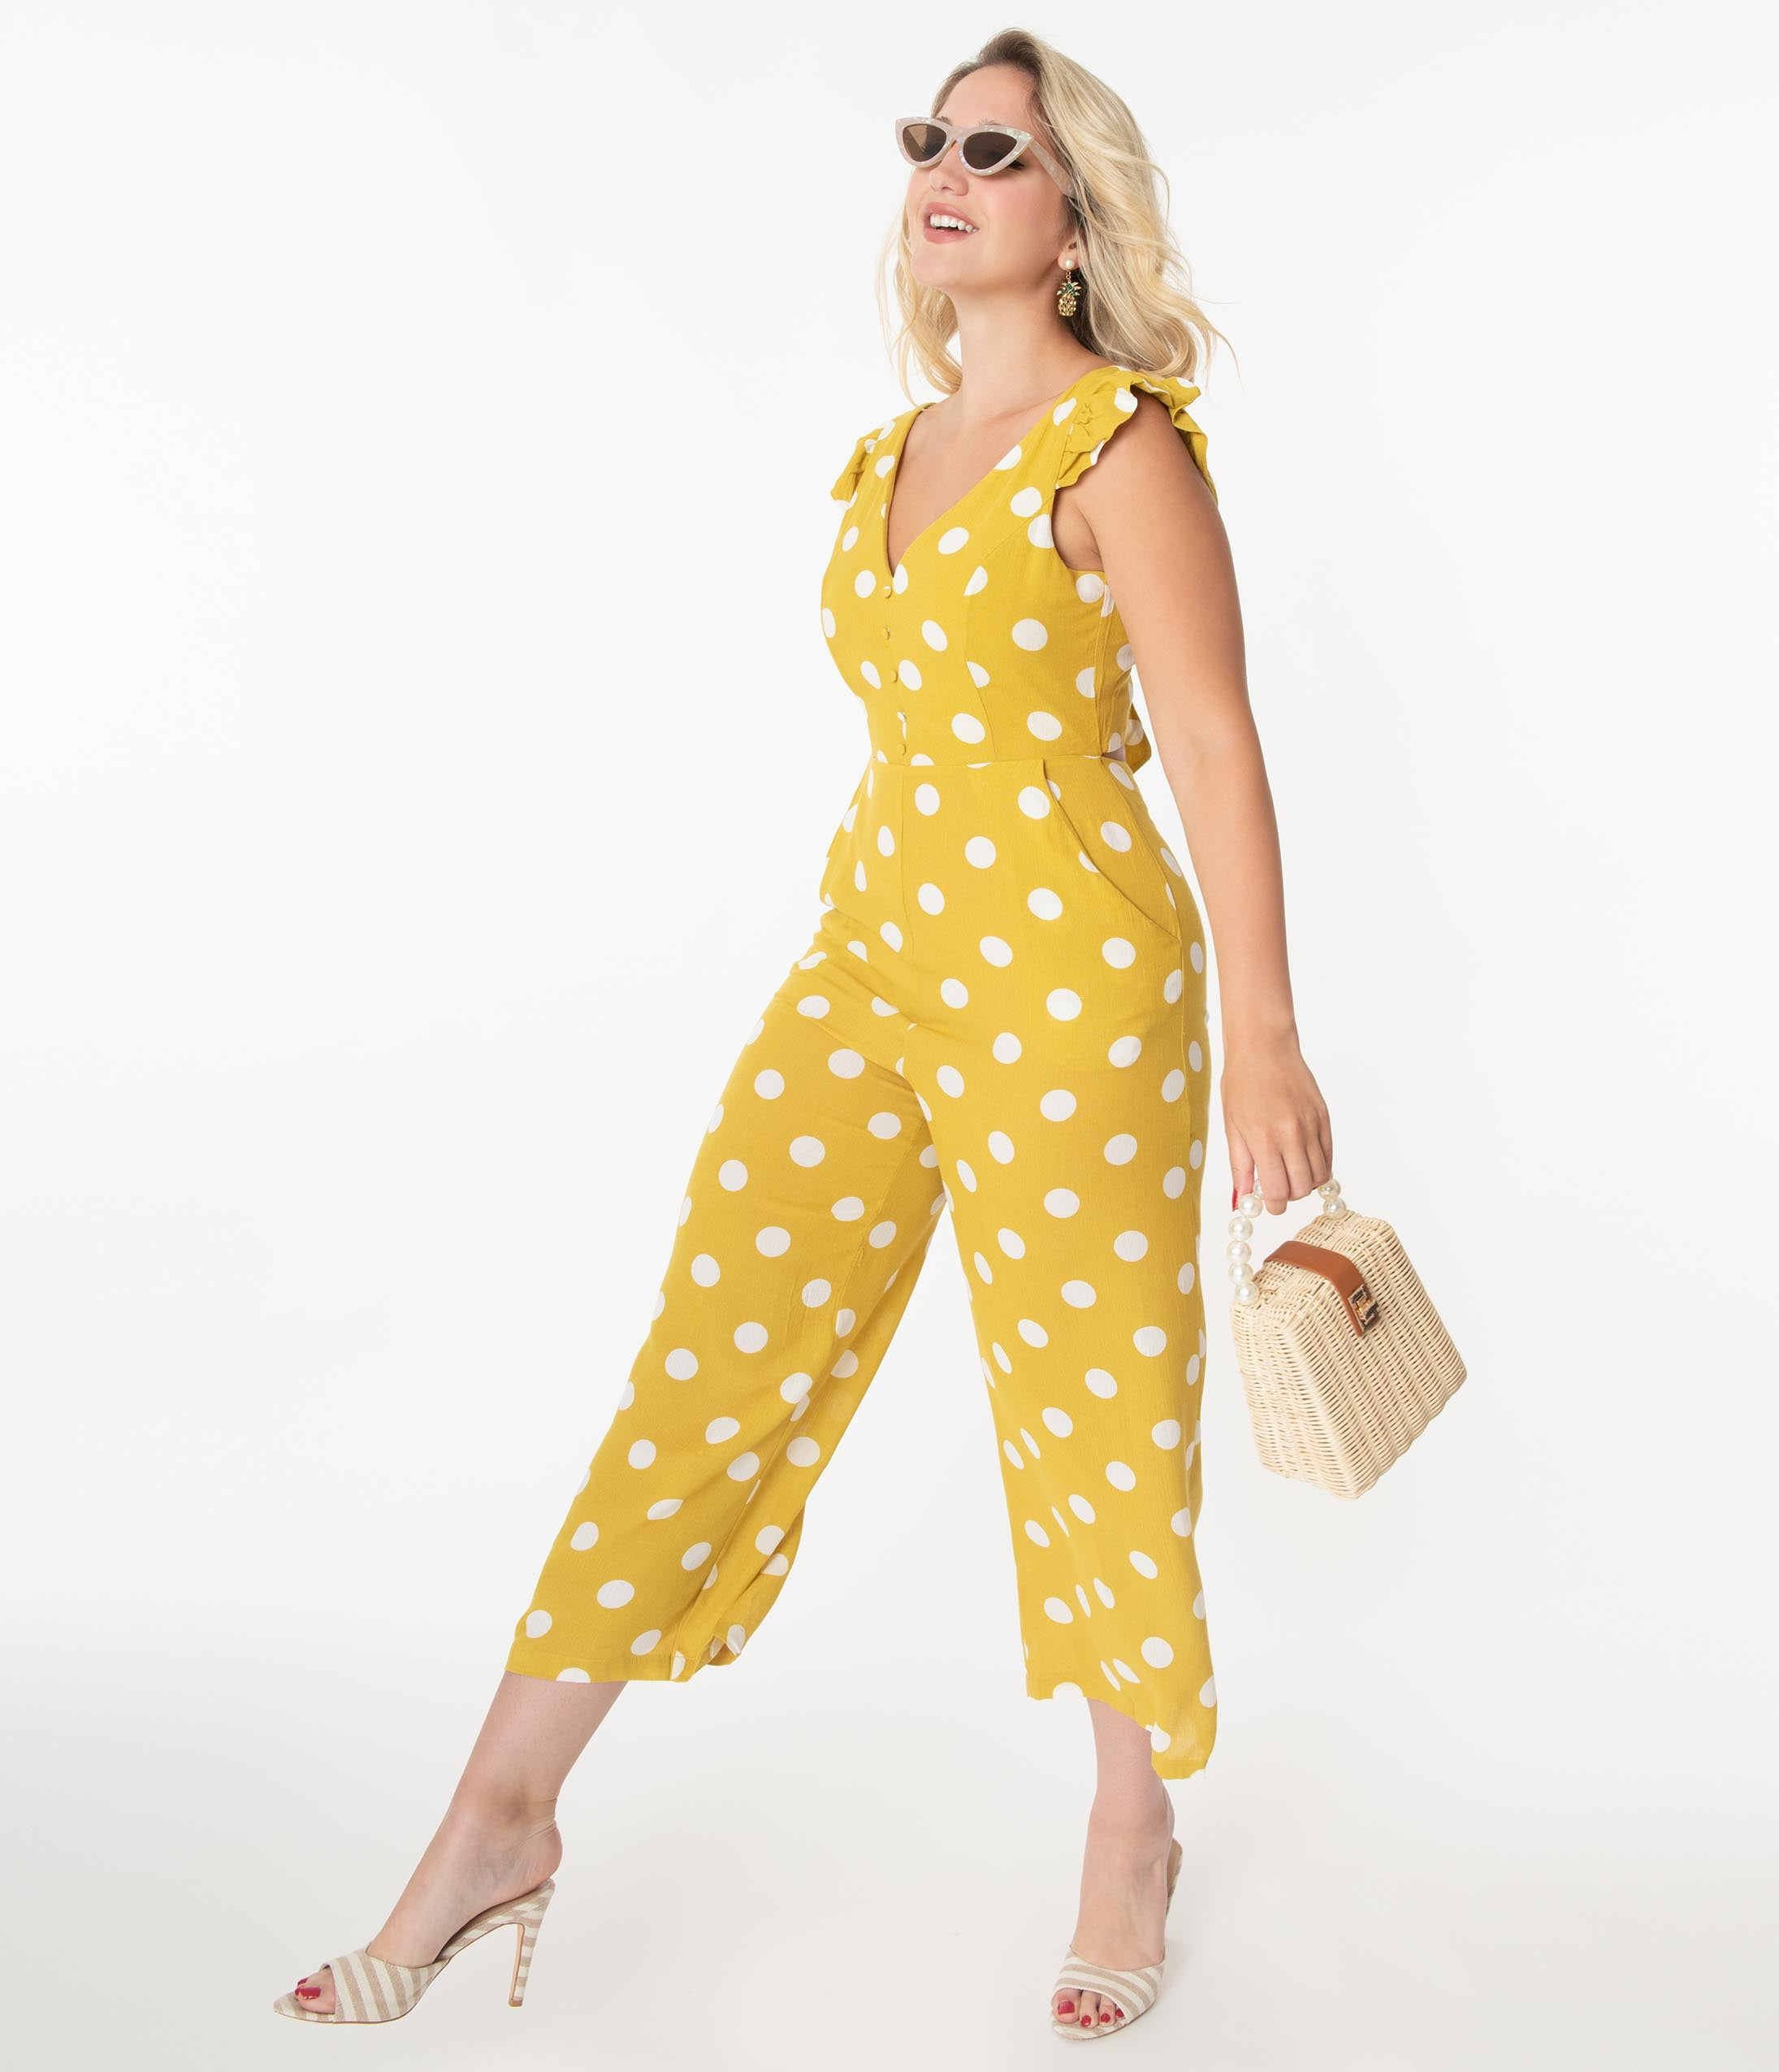 Vintage Overalls 1910s -1950s History & Shop Overalls Pear Yellow  White Polka Dot Jumpsuit $68.00 AT vintagedancer.com